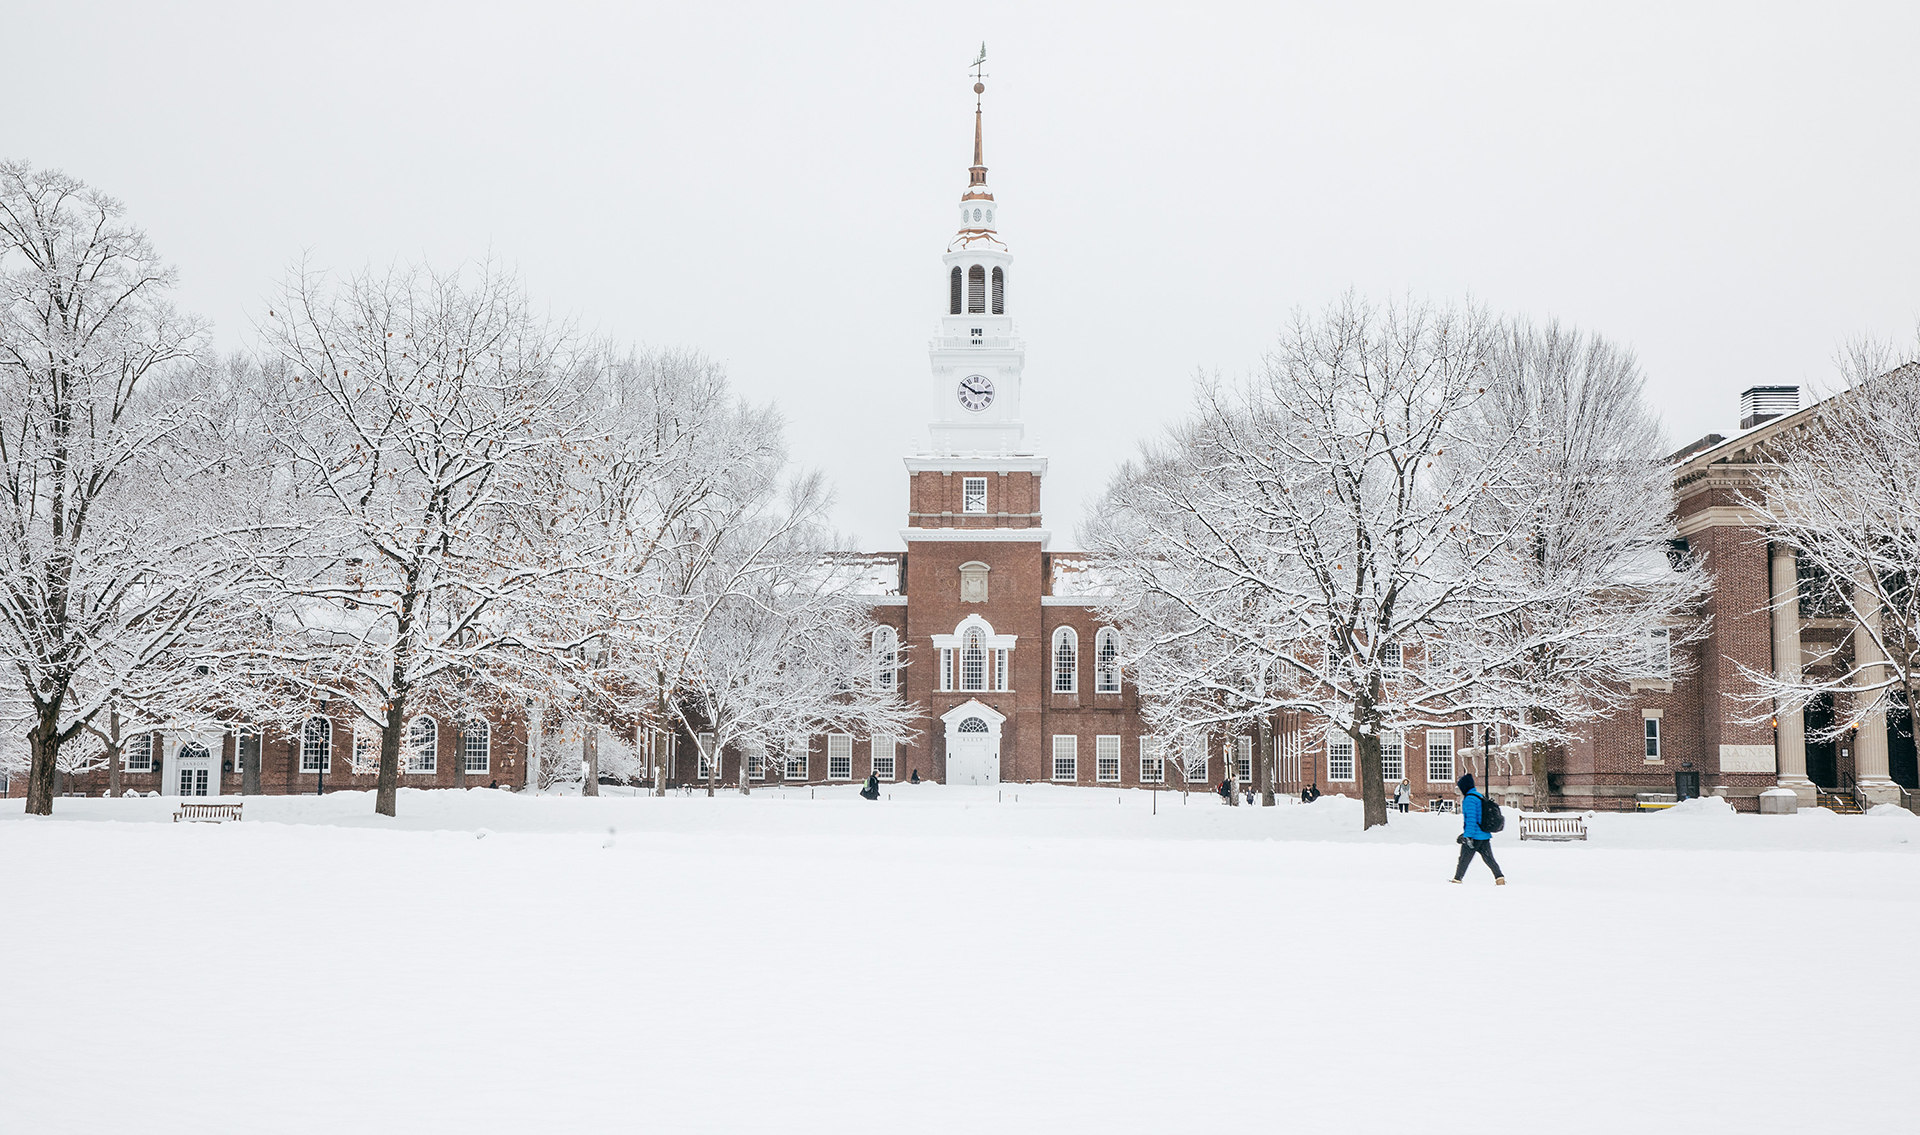 Photo of Baker Library in the winter with snow on the ground